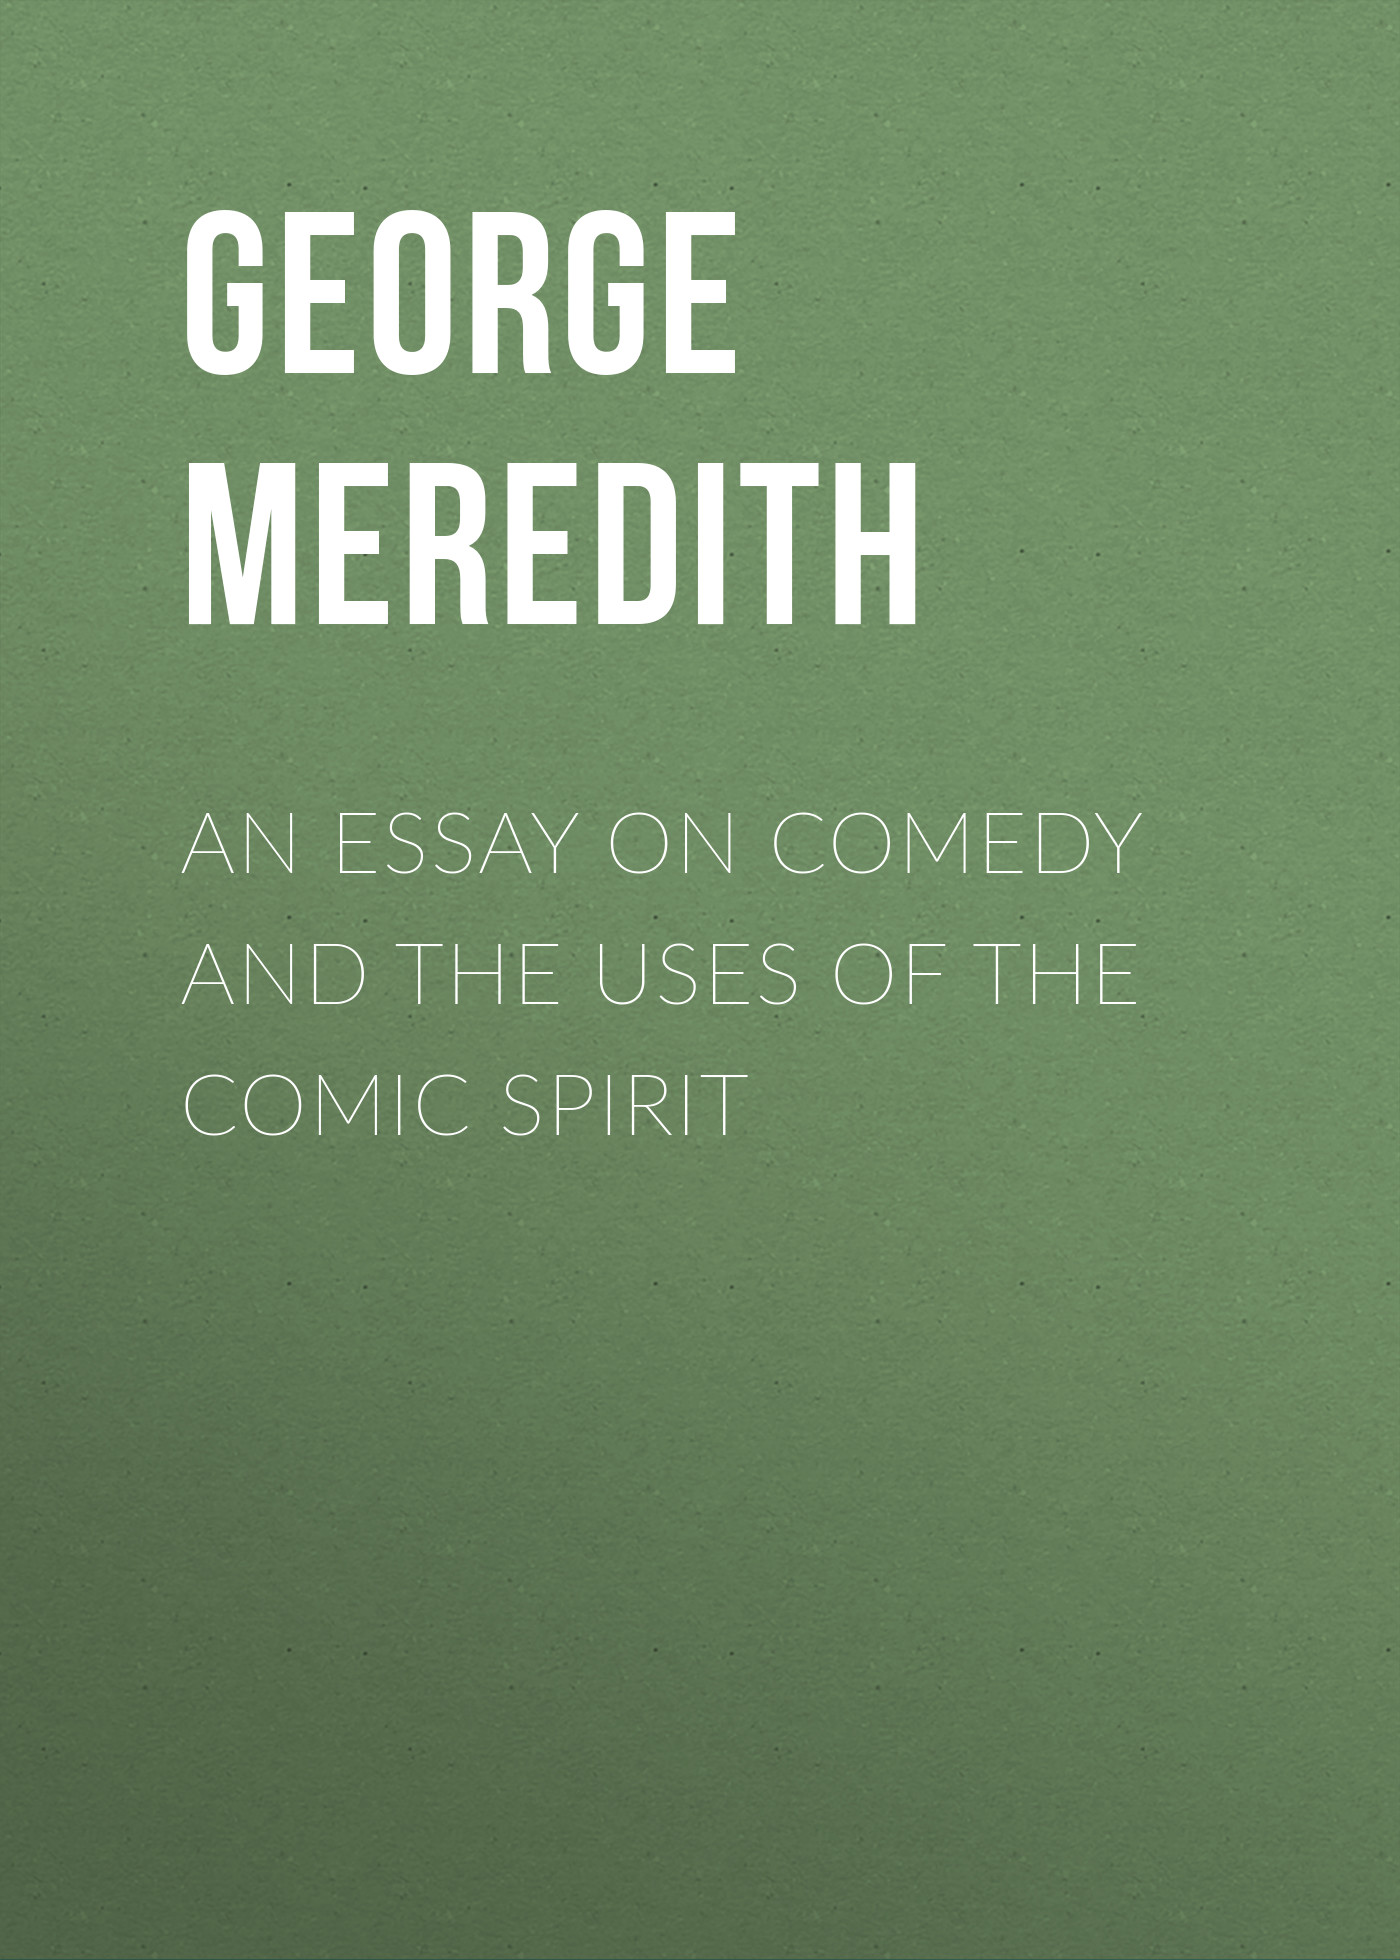 George Meredith An Essay on Comedy and the Uses of the Comic Spirit john esten cooke an essay on the invalidity of presbyterian ordination